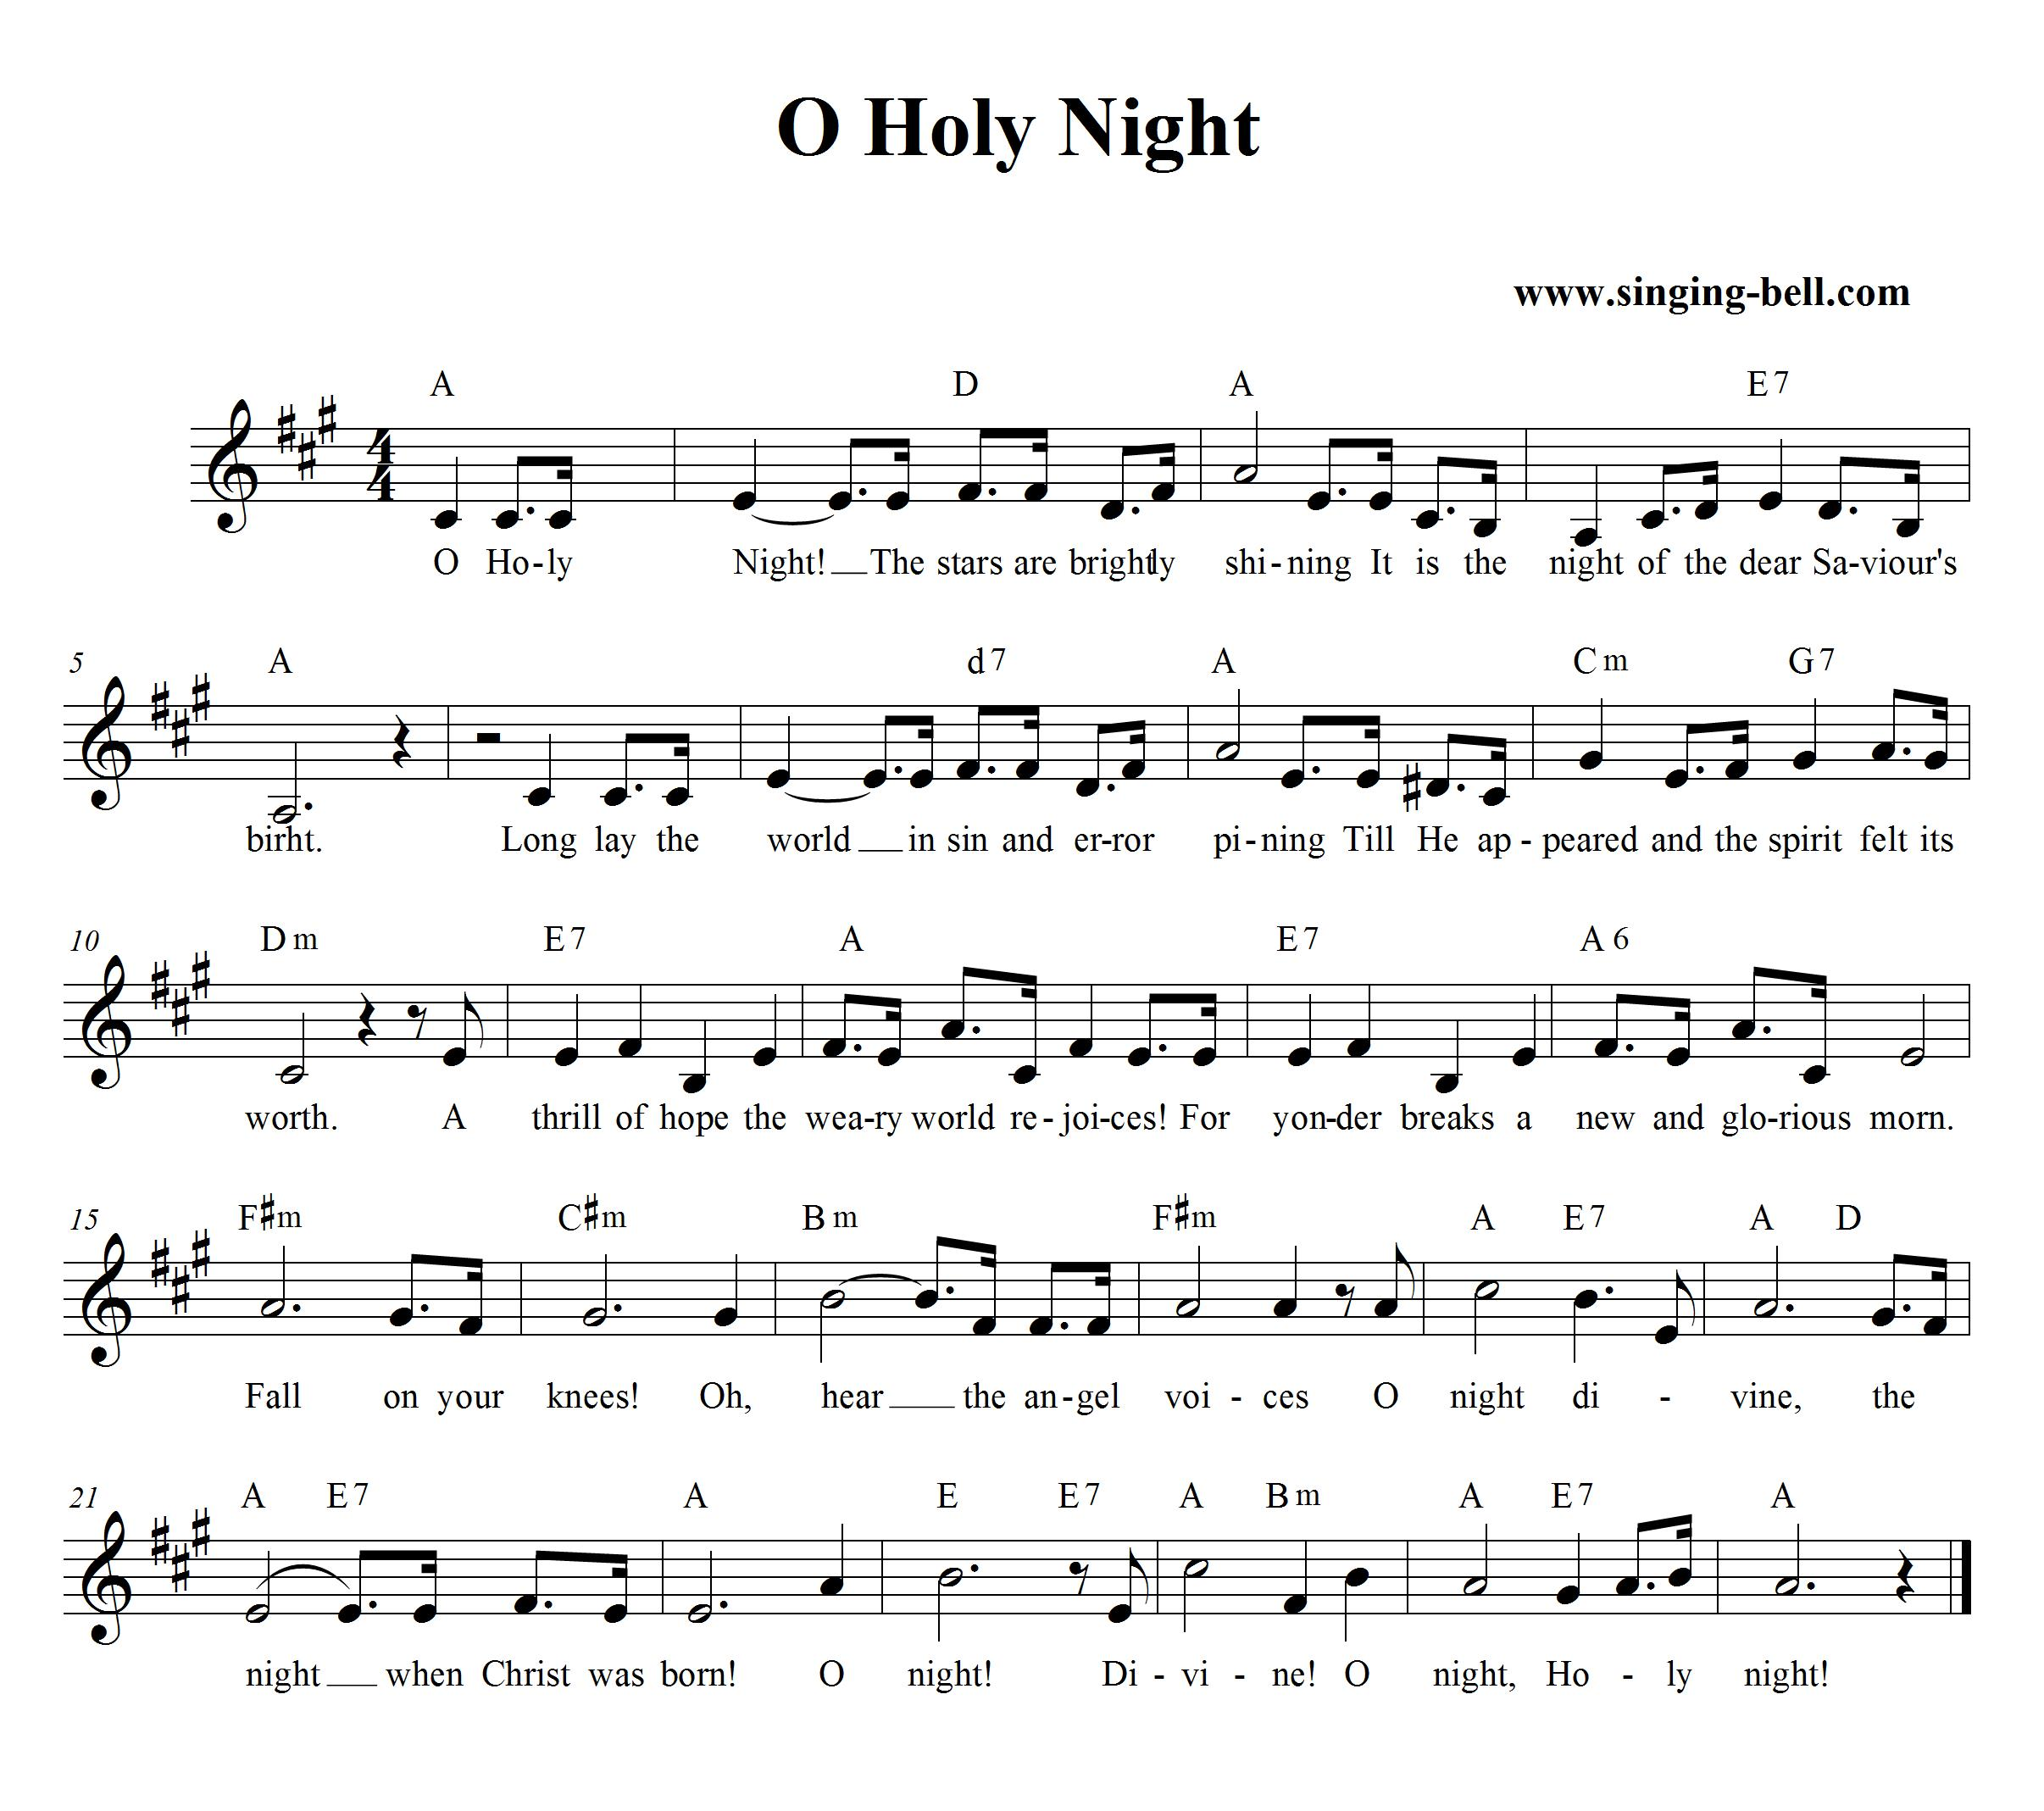 The Song Oh Christmas Tree: O Holy Night (Cantique De Noël)